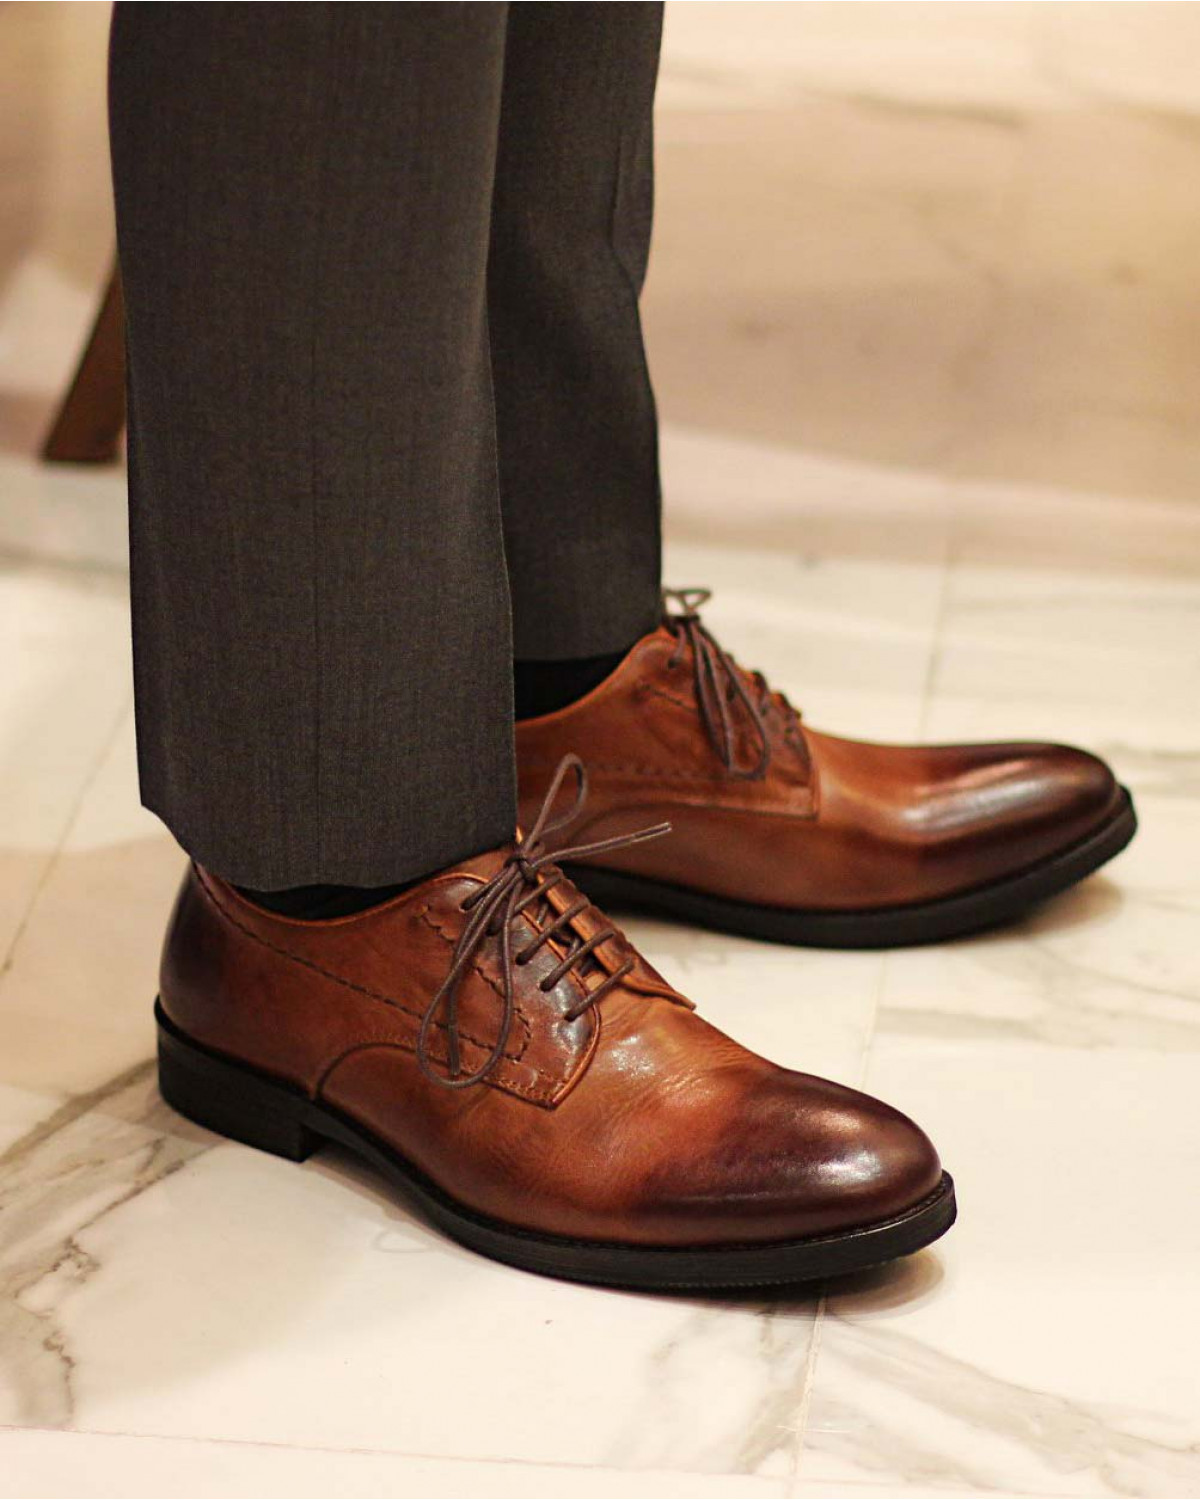 RAD by RAUDi 82105 Washed Derby Shoes・Brown